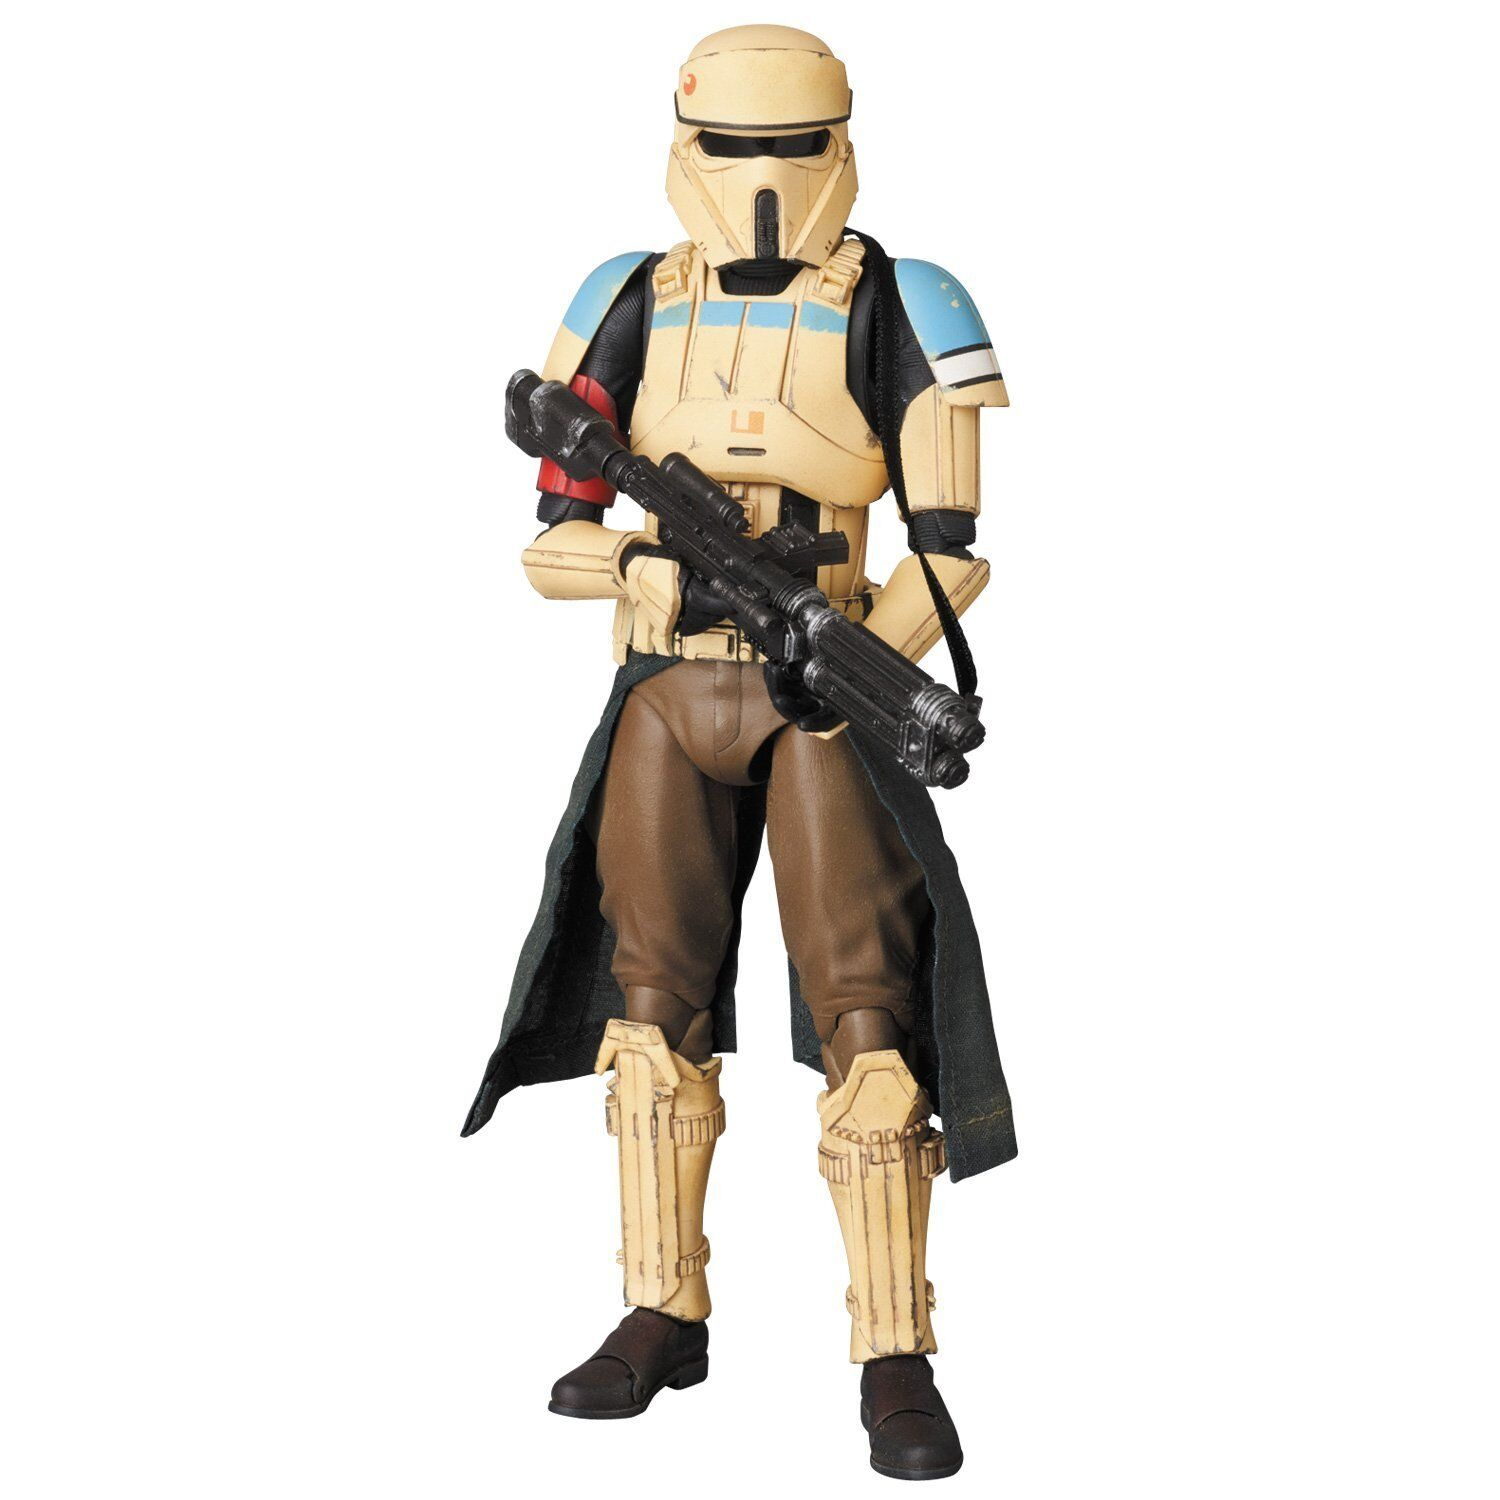 Medicom Toy MAFEX Star Wars Rogue One: Shoretrooper Japan version